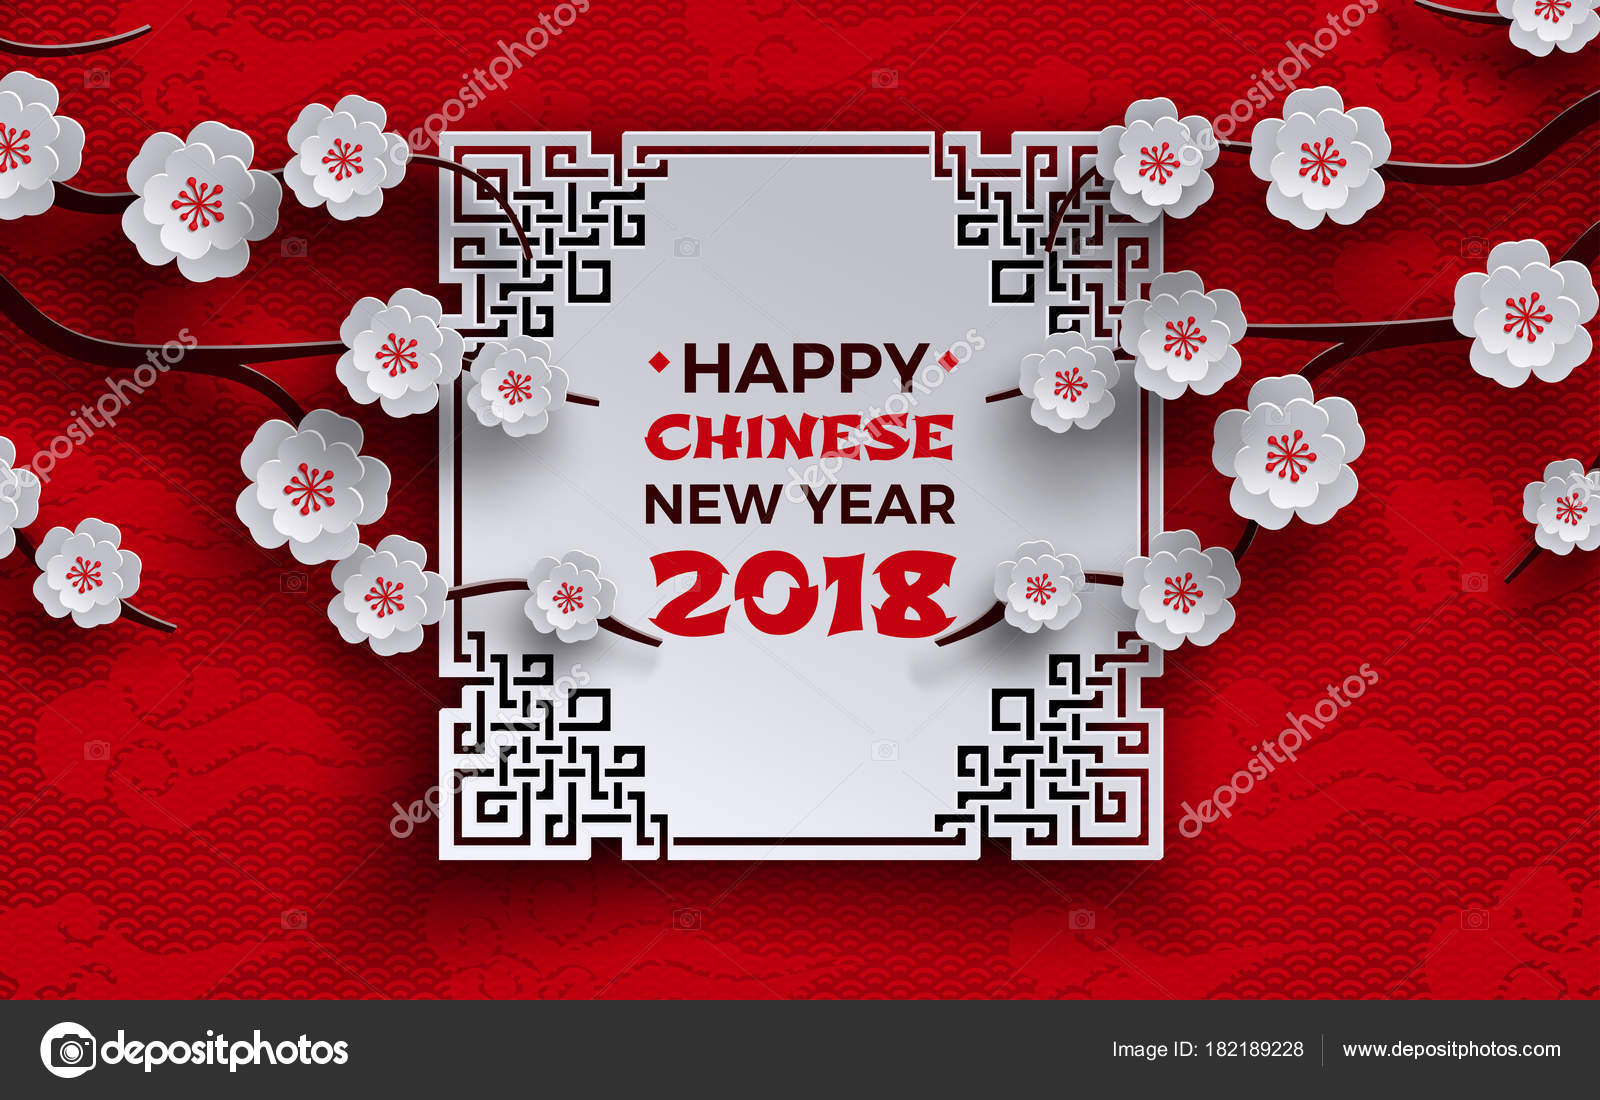 chinese new year 2018 banner with white ornate frame sakura cherry flowers tree red pattern background with oriental clouds design element for banner